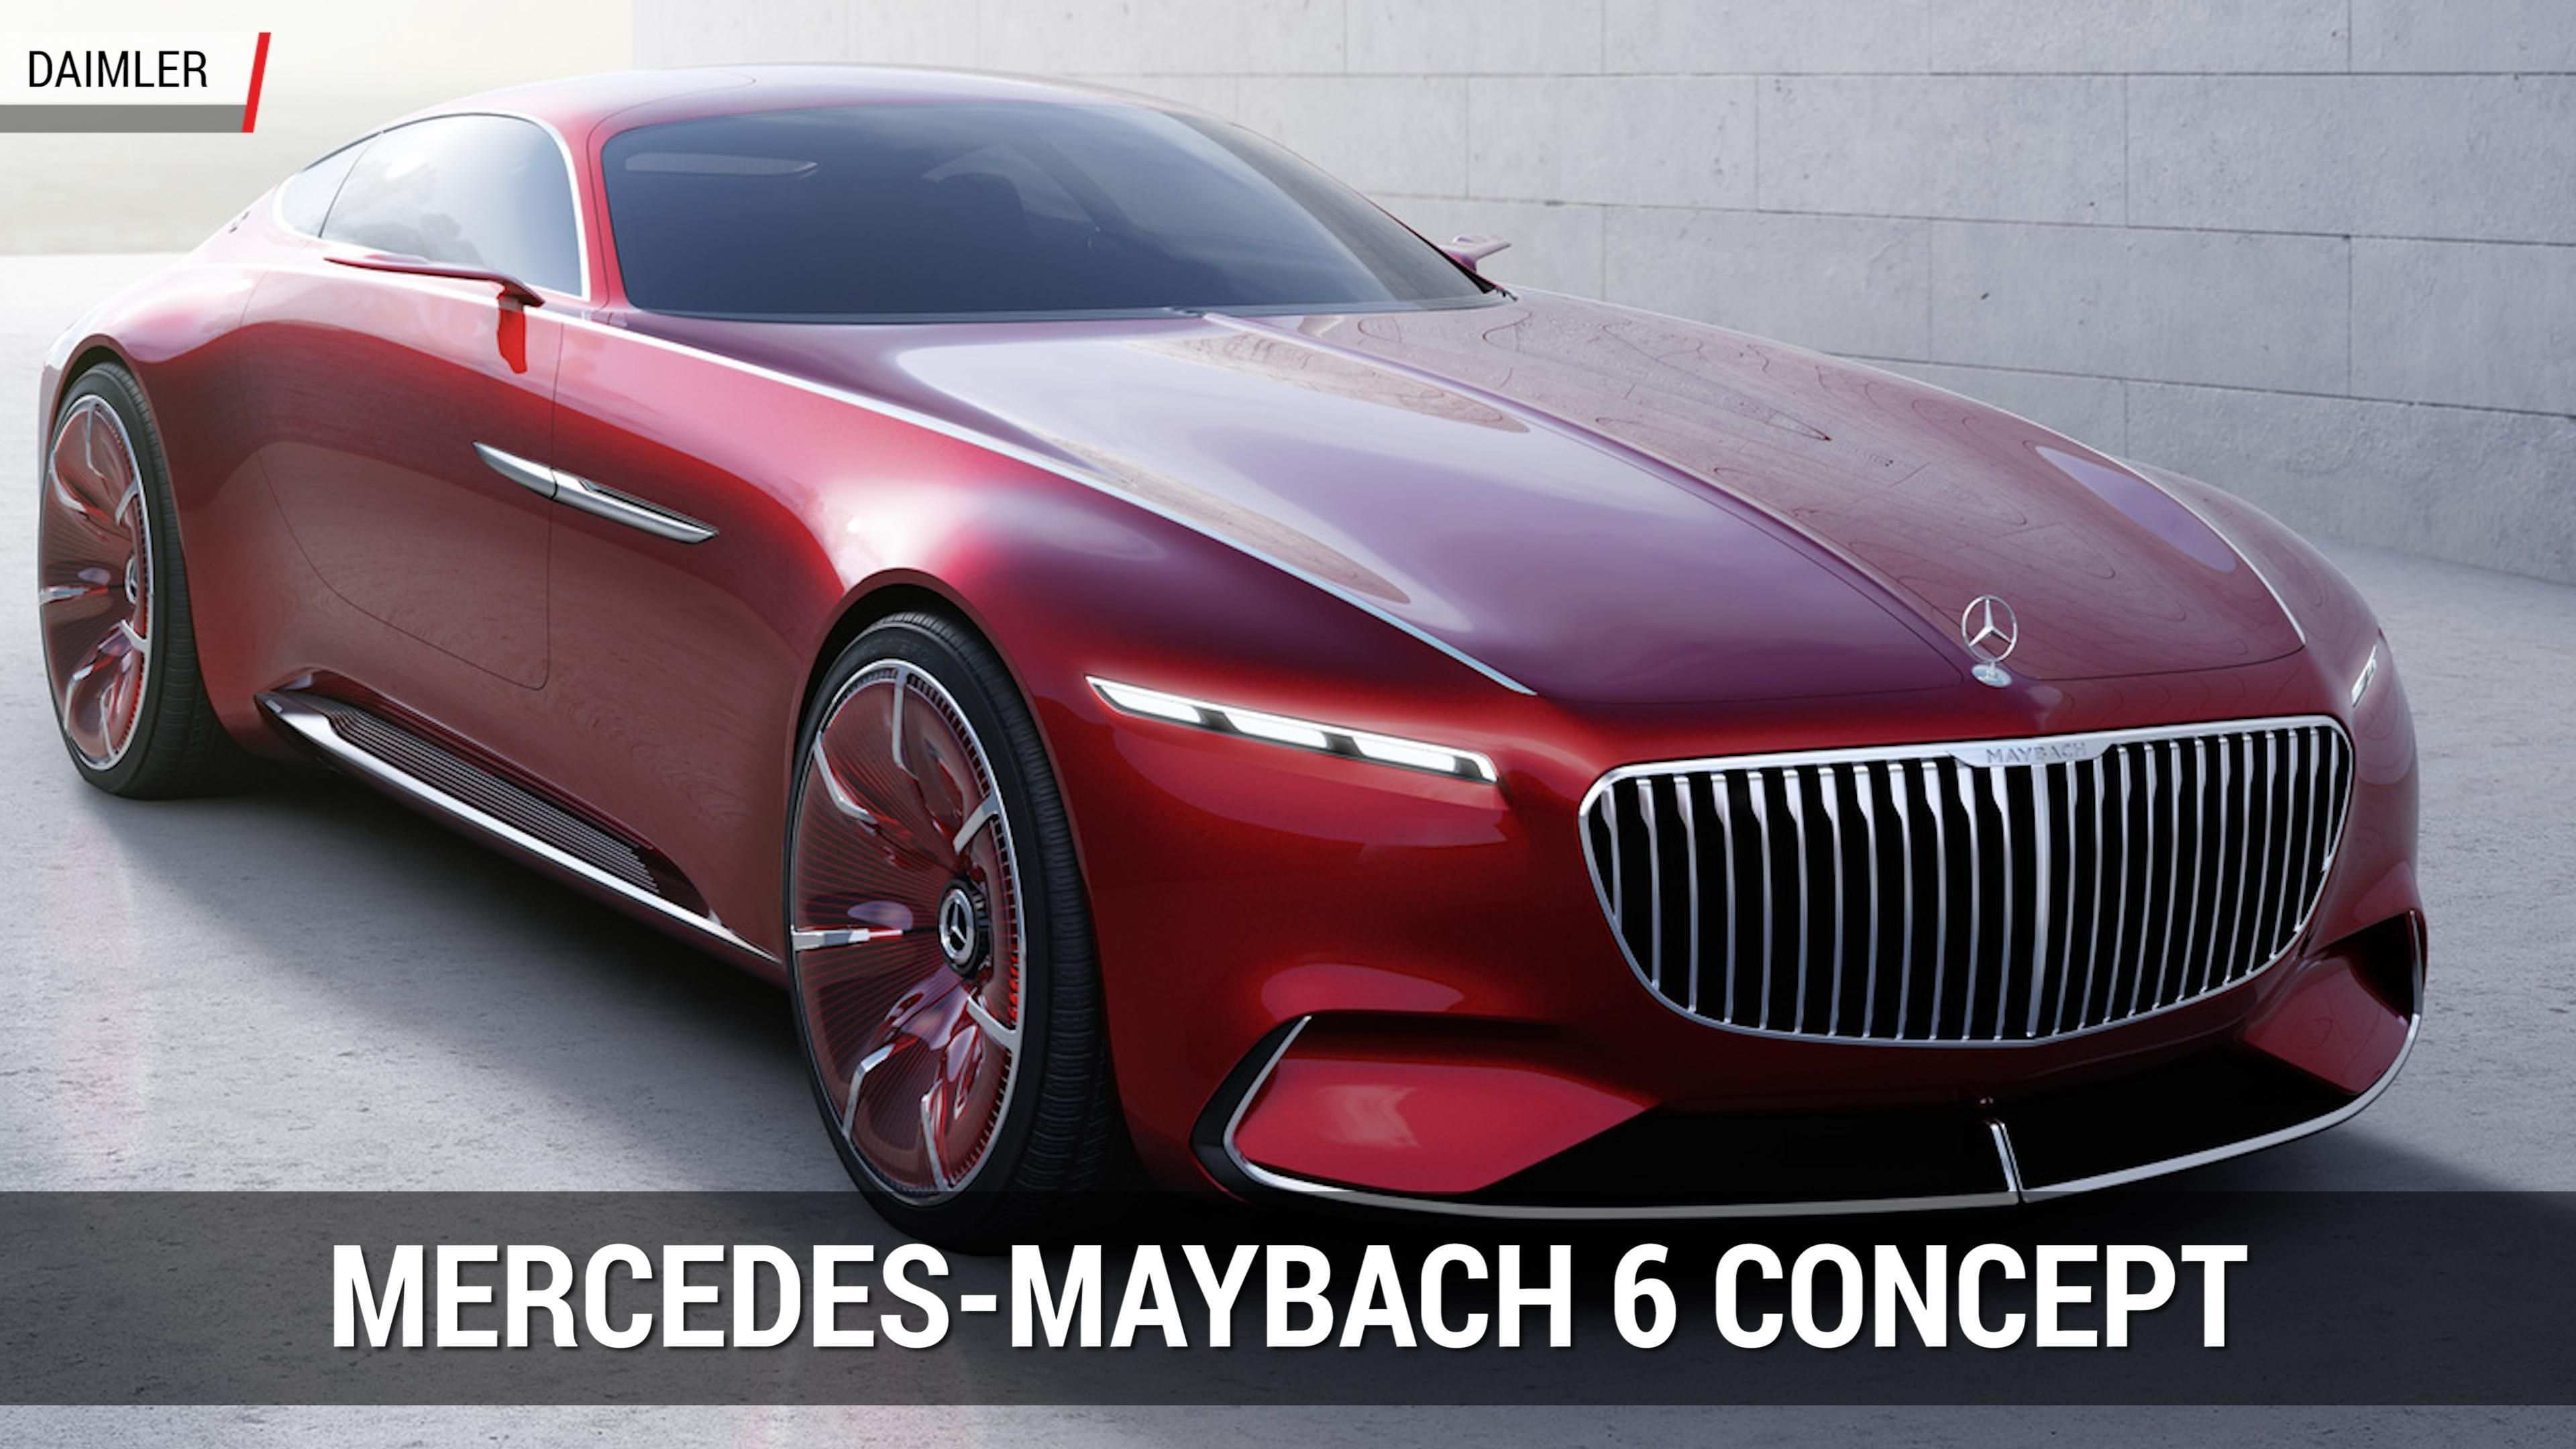 56 The Best 2019 Mercedes Maybach 6 Cabriolet Price New Concept